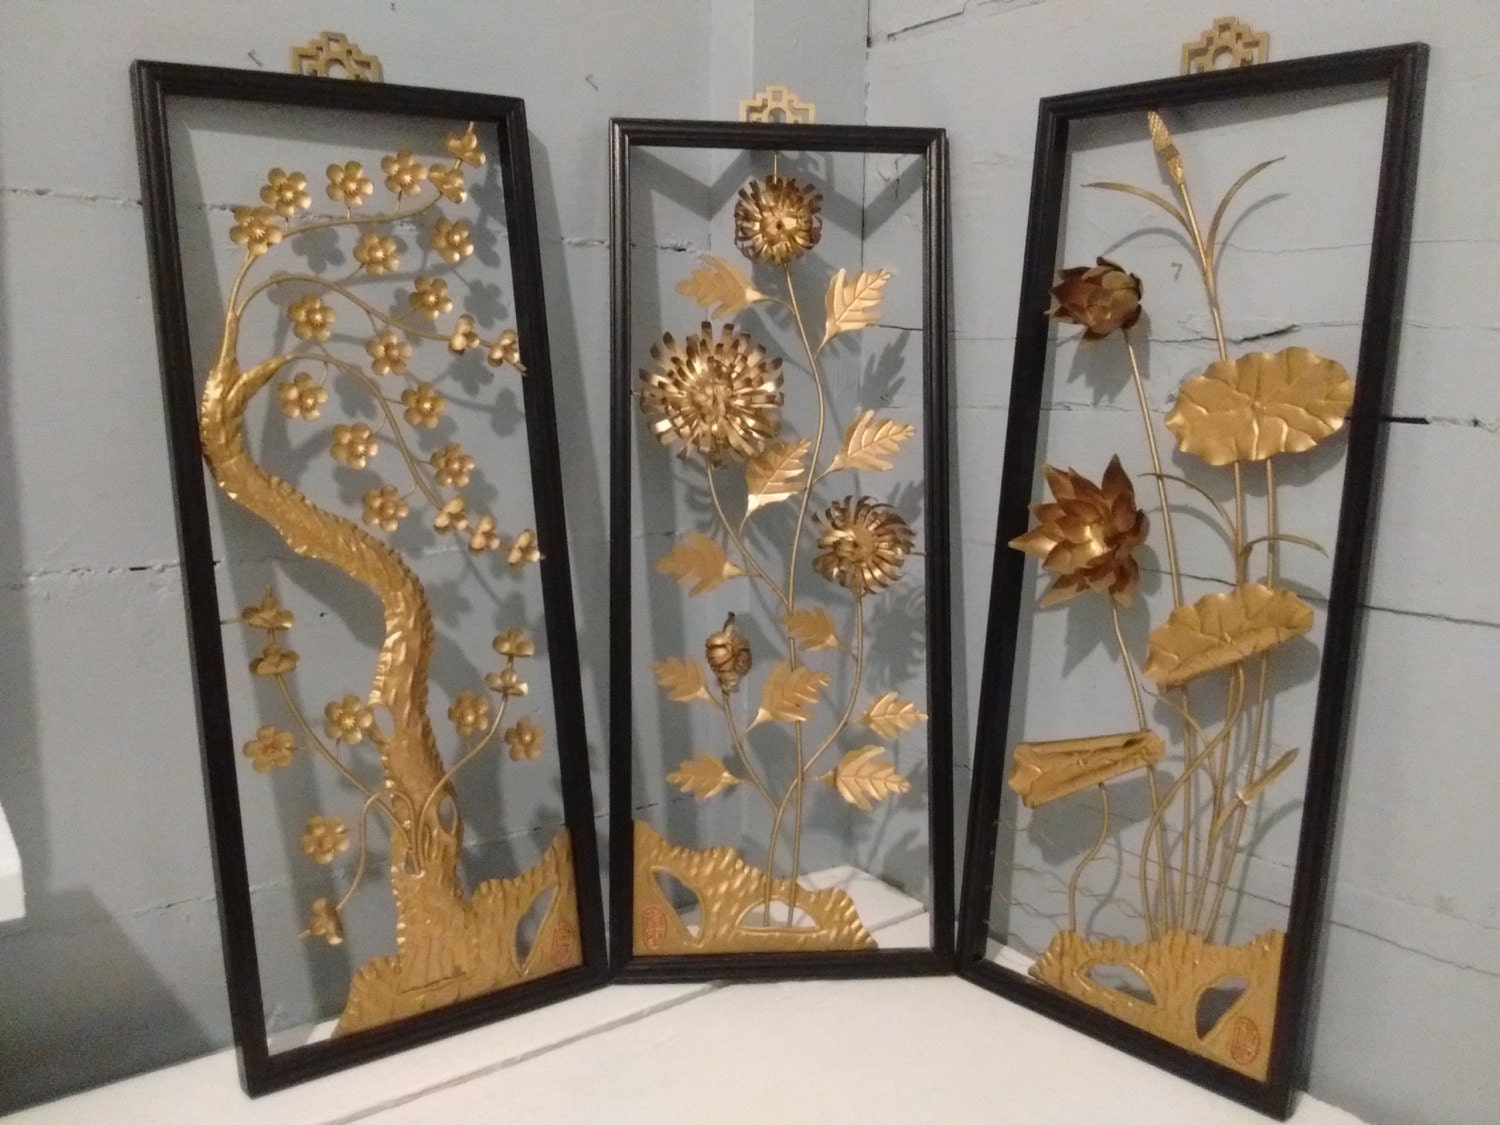 Art floral framed 3d wall art metal sculpture set for Asian home decor